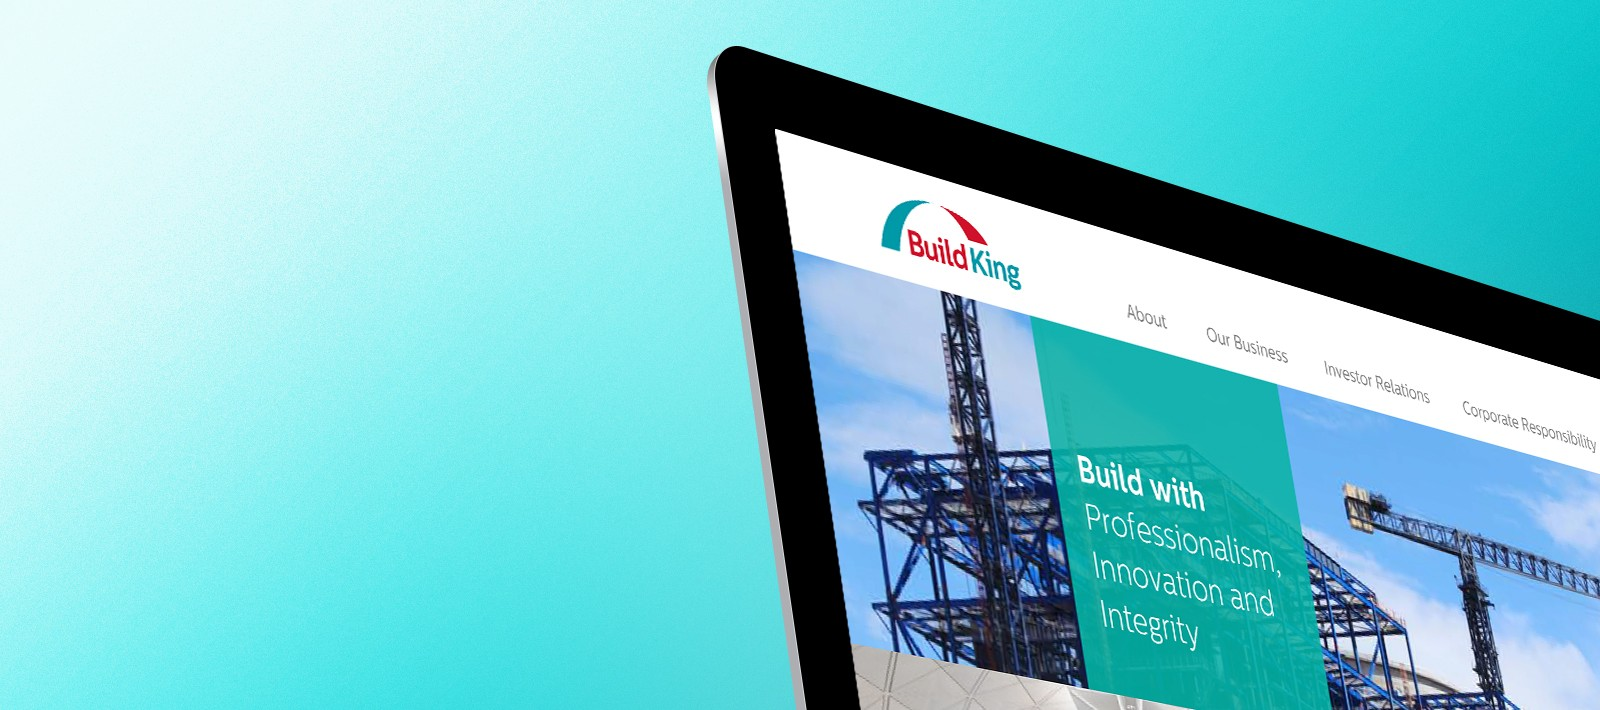 Brand identity strategy for a construction company